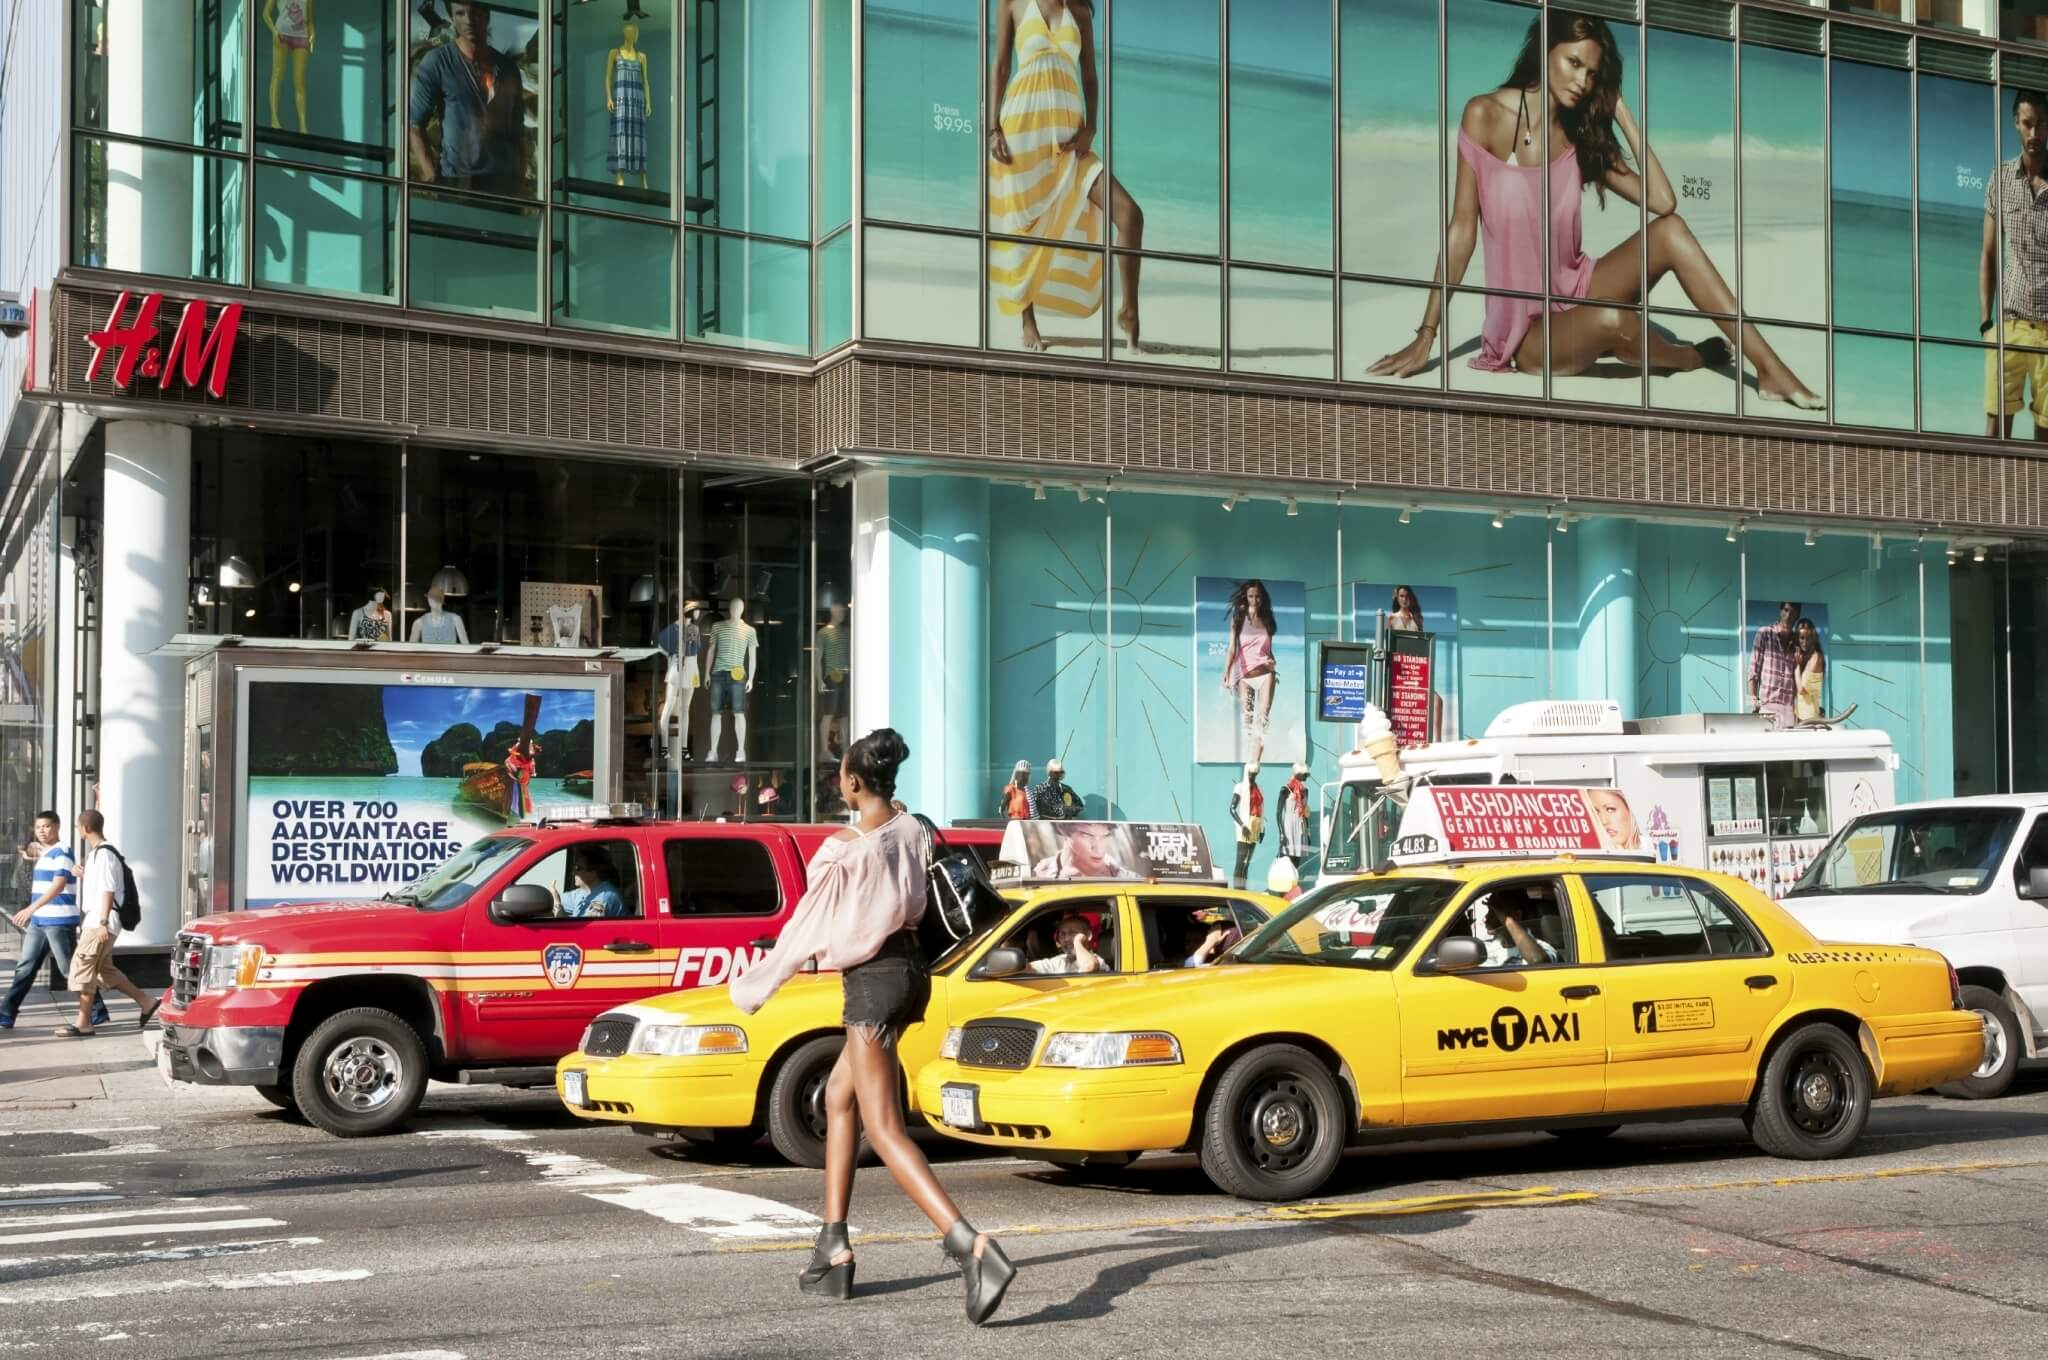 Busy-intersection-at-42nd-Street-in-New-York-City-000017403100_Large.jpg.jpeg